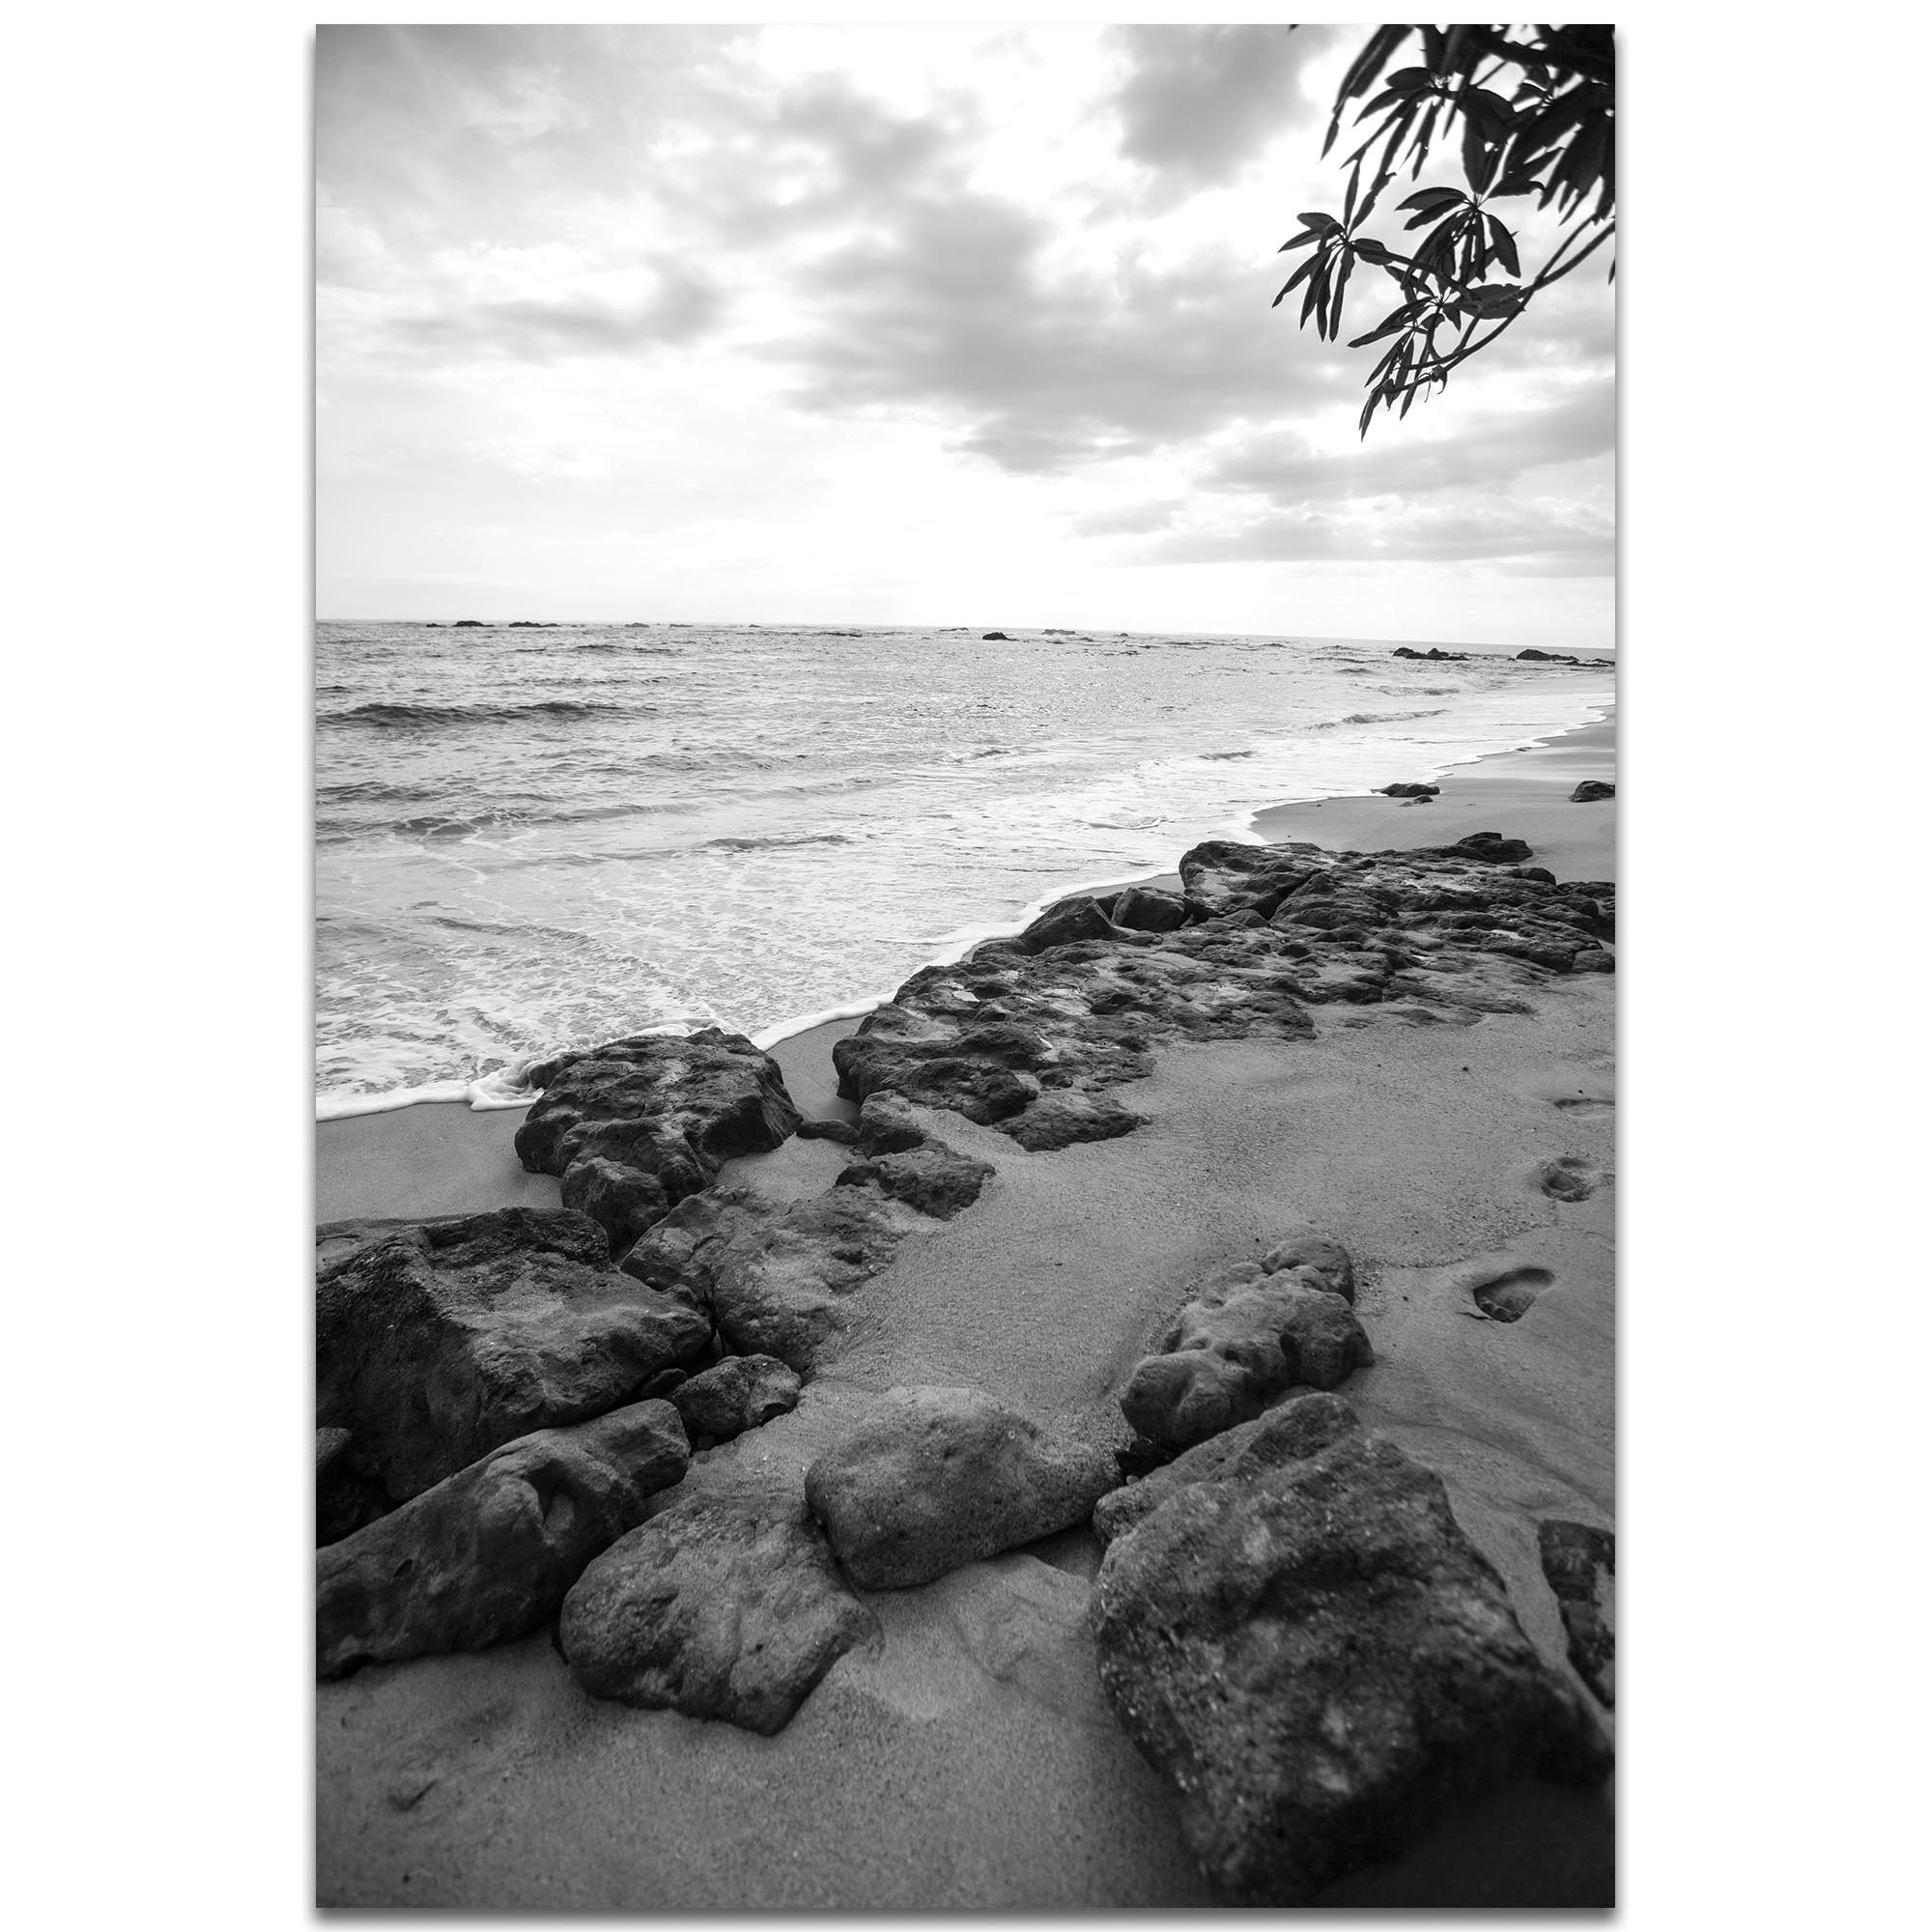 Black & White Photography 'The Coastline' - Coastal Art on Metal or Plexiglass